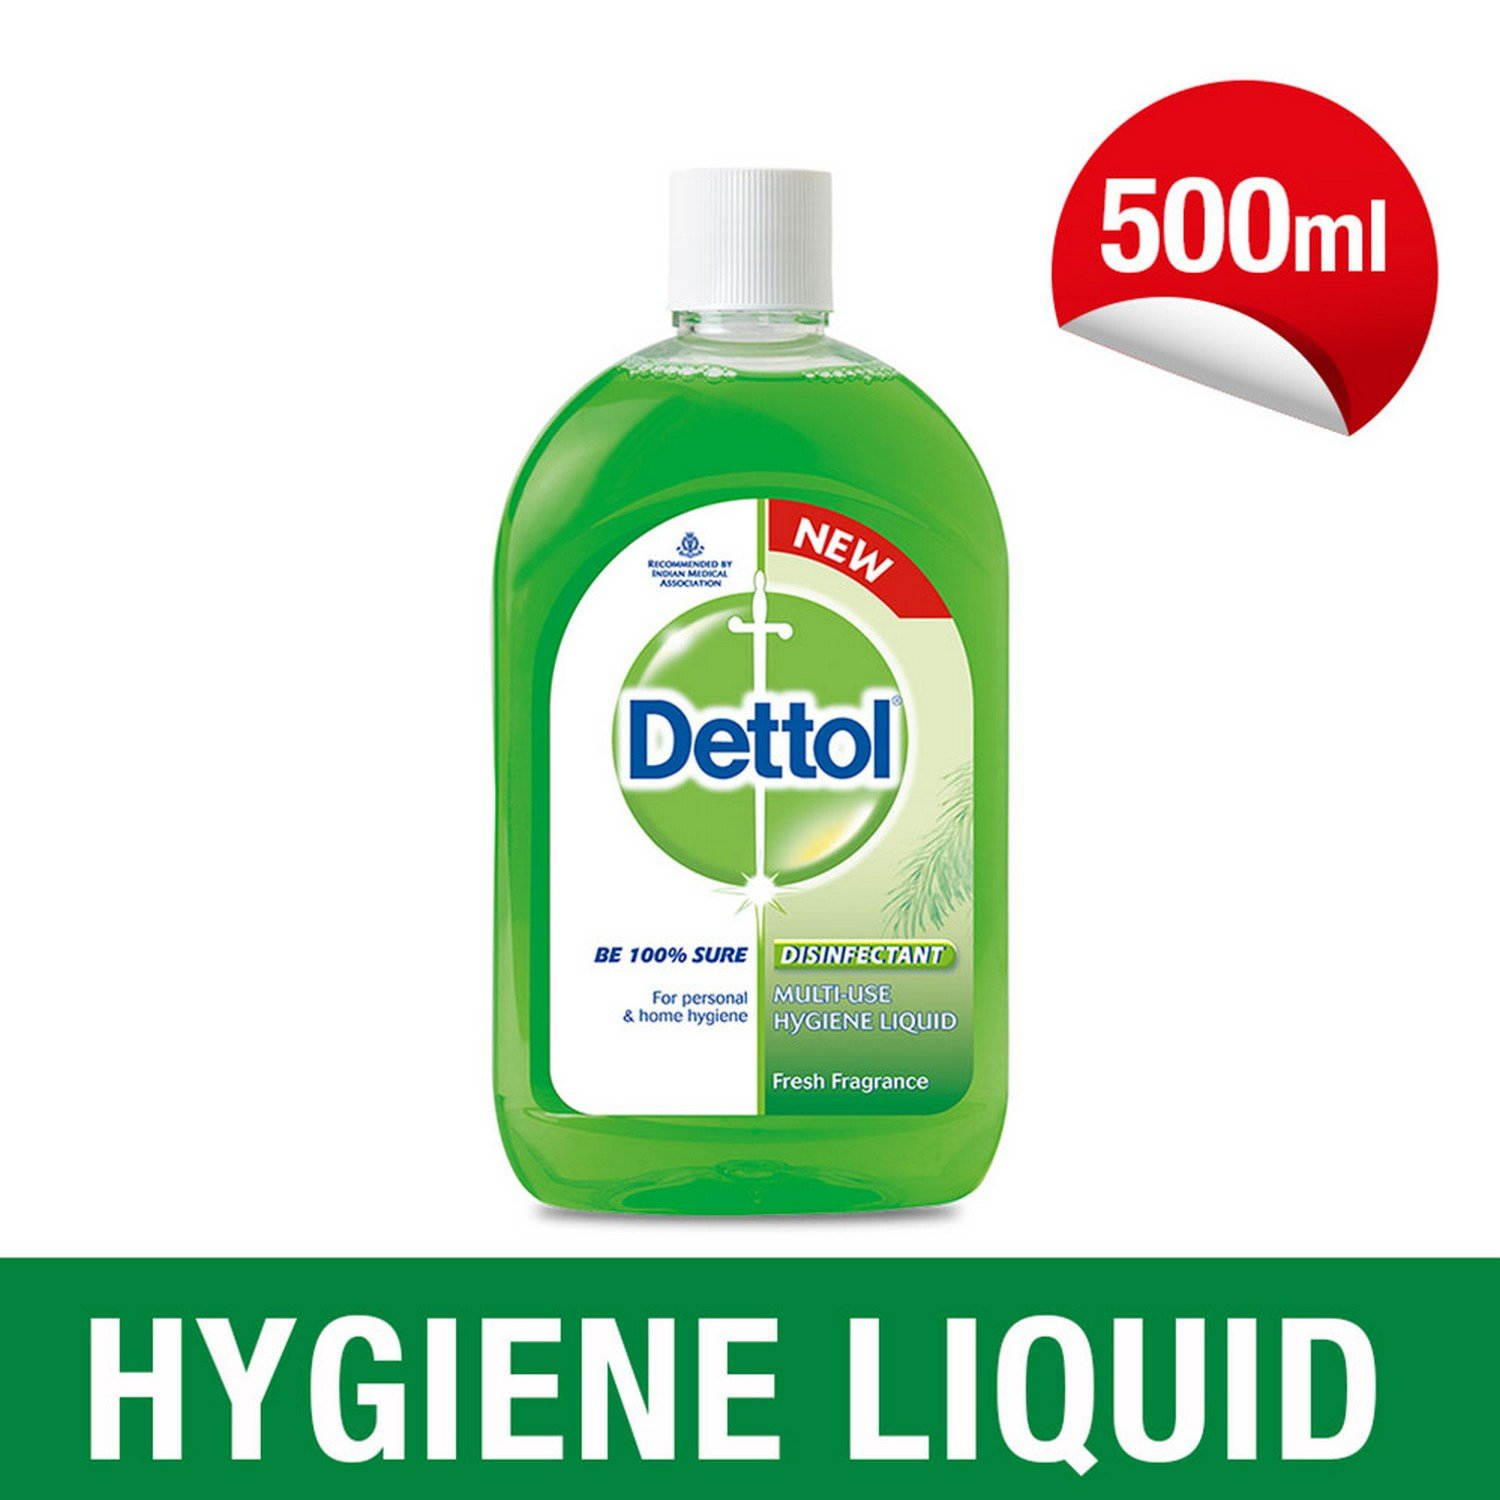 Do different dilutions of disinfectants affect the development of - Buy Dettol Disinfectant Multi Use Hygiene Liquid 500 Ml Online At Low Prices In India Amazon In